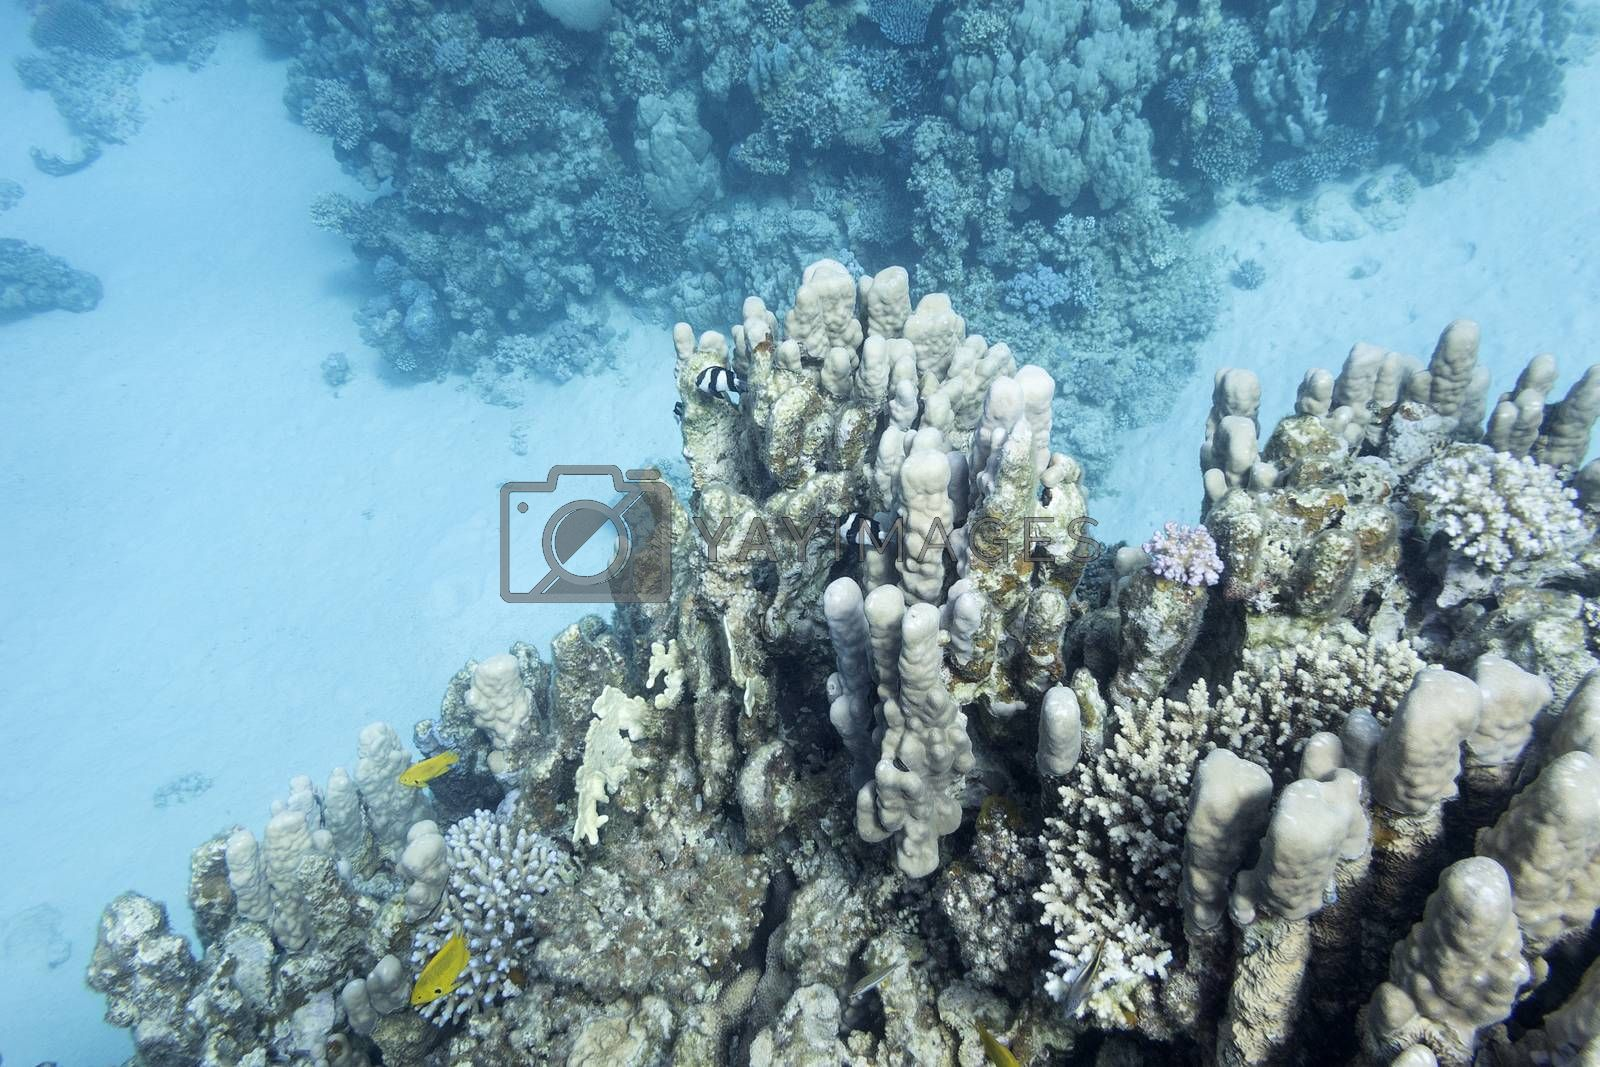 Royalty free image of coral reef with porites coral in tropical sea, underwater by mychadre77